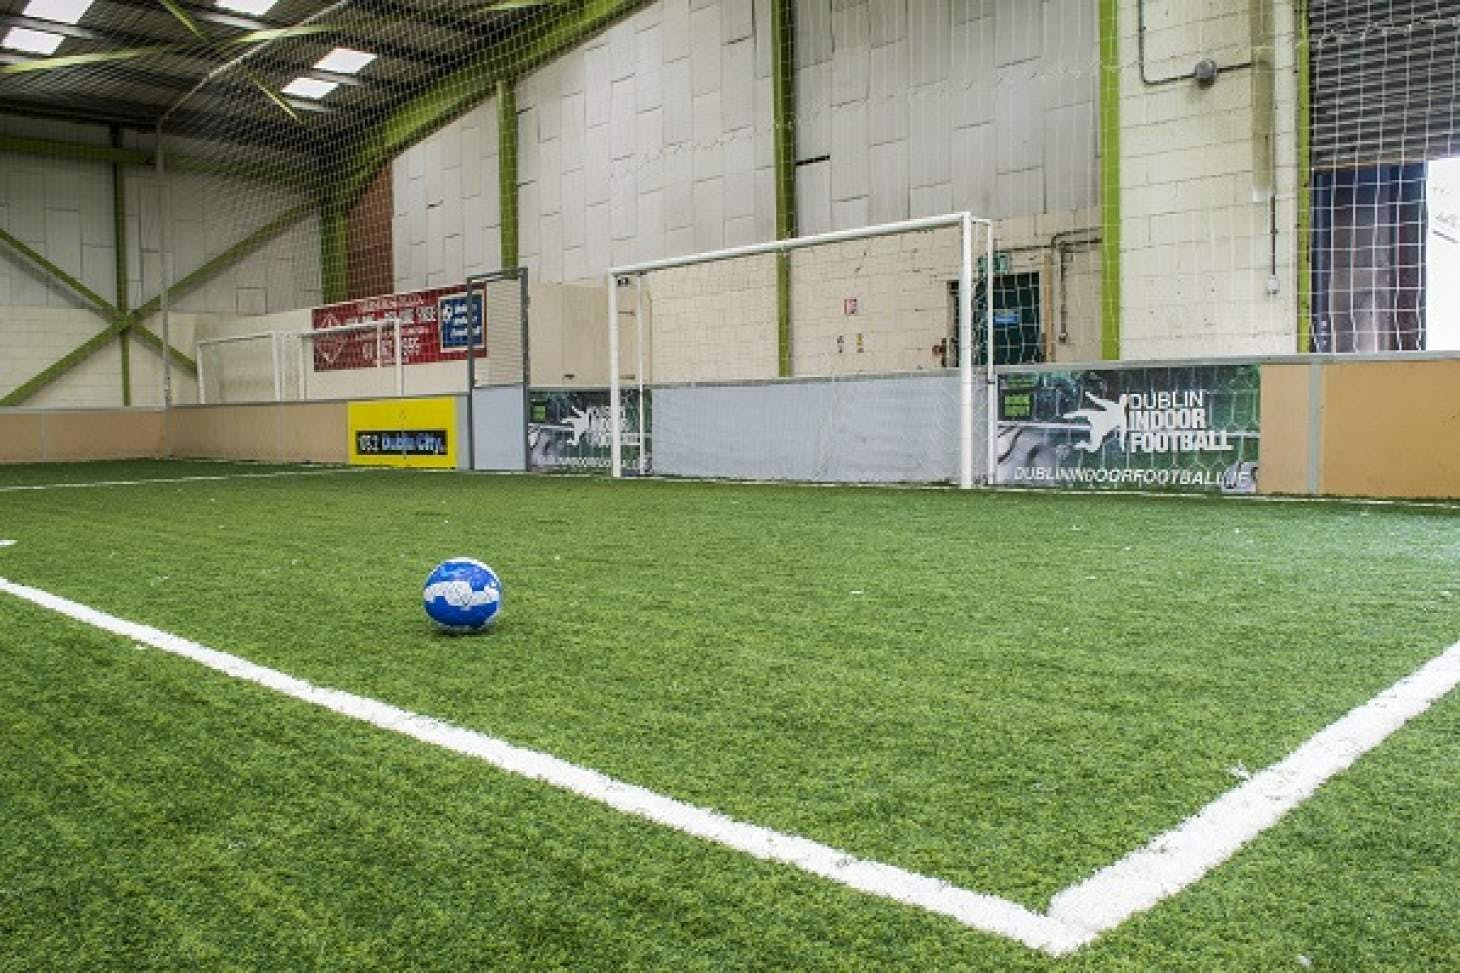 Dublin Indoor Football 5 a side | 3G Astroturf football pitch